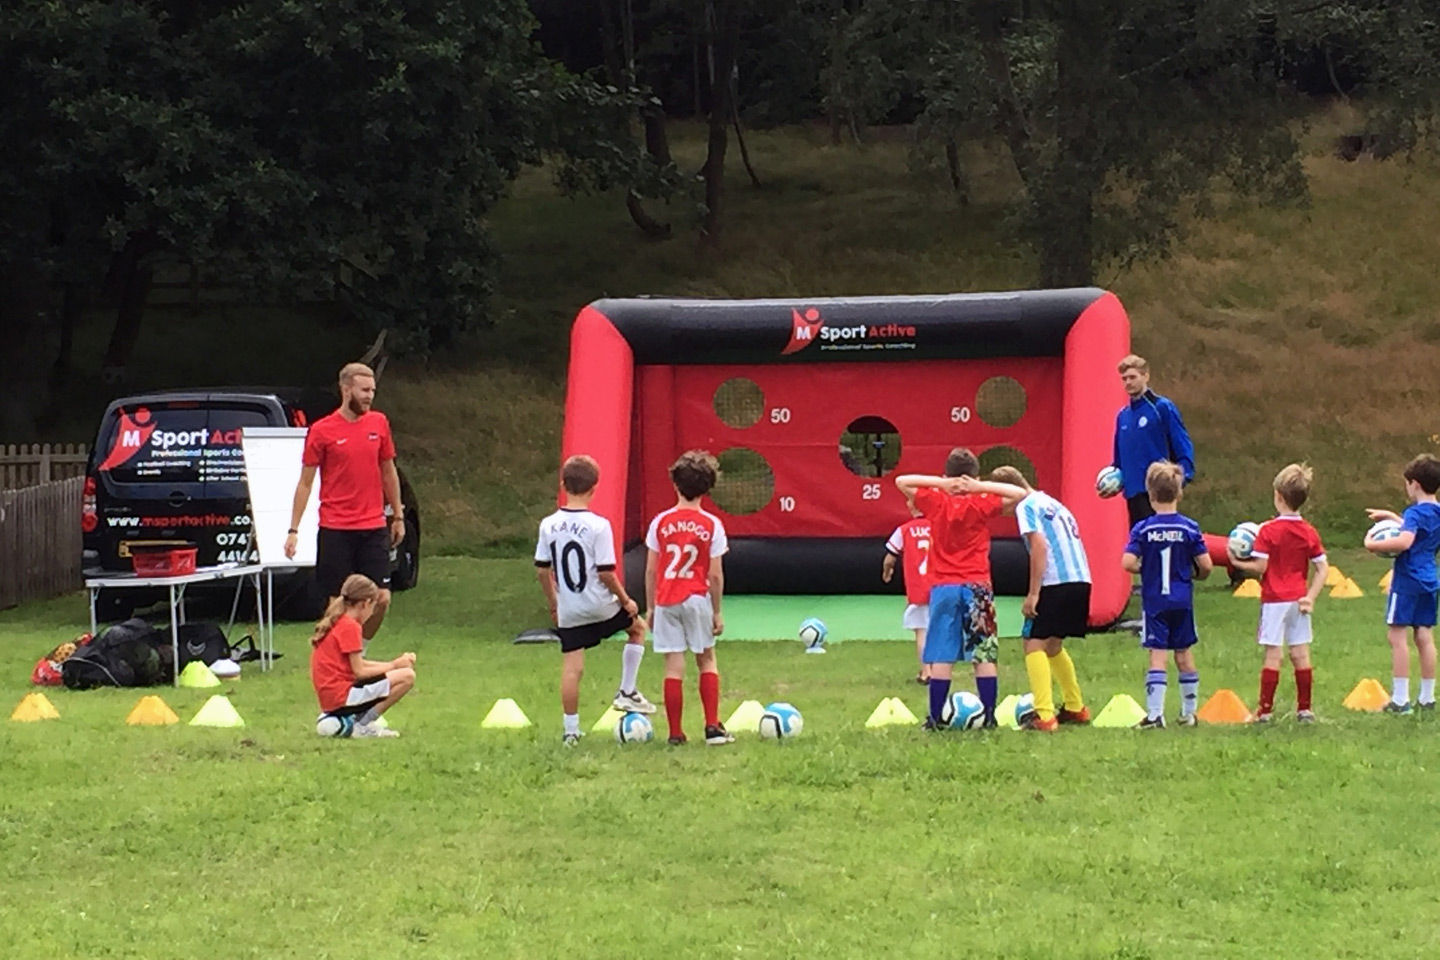 children seeing how fast they can shoot at the speed goal